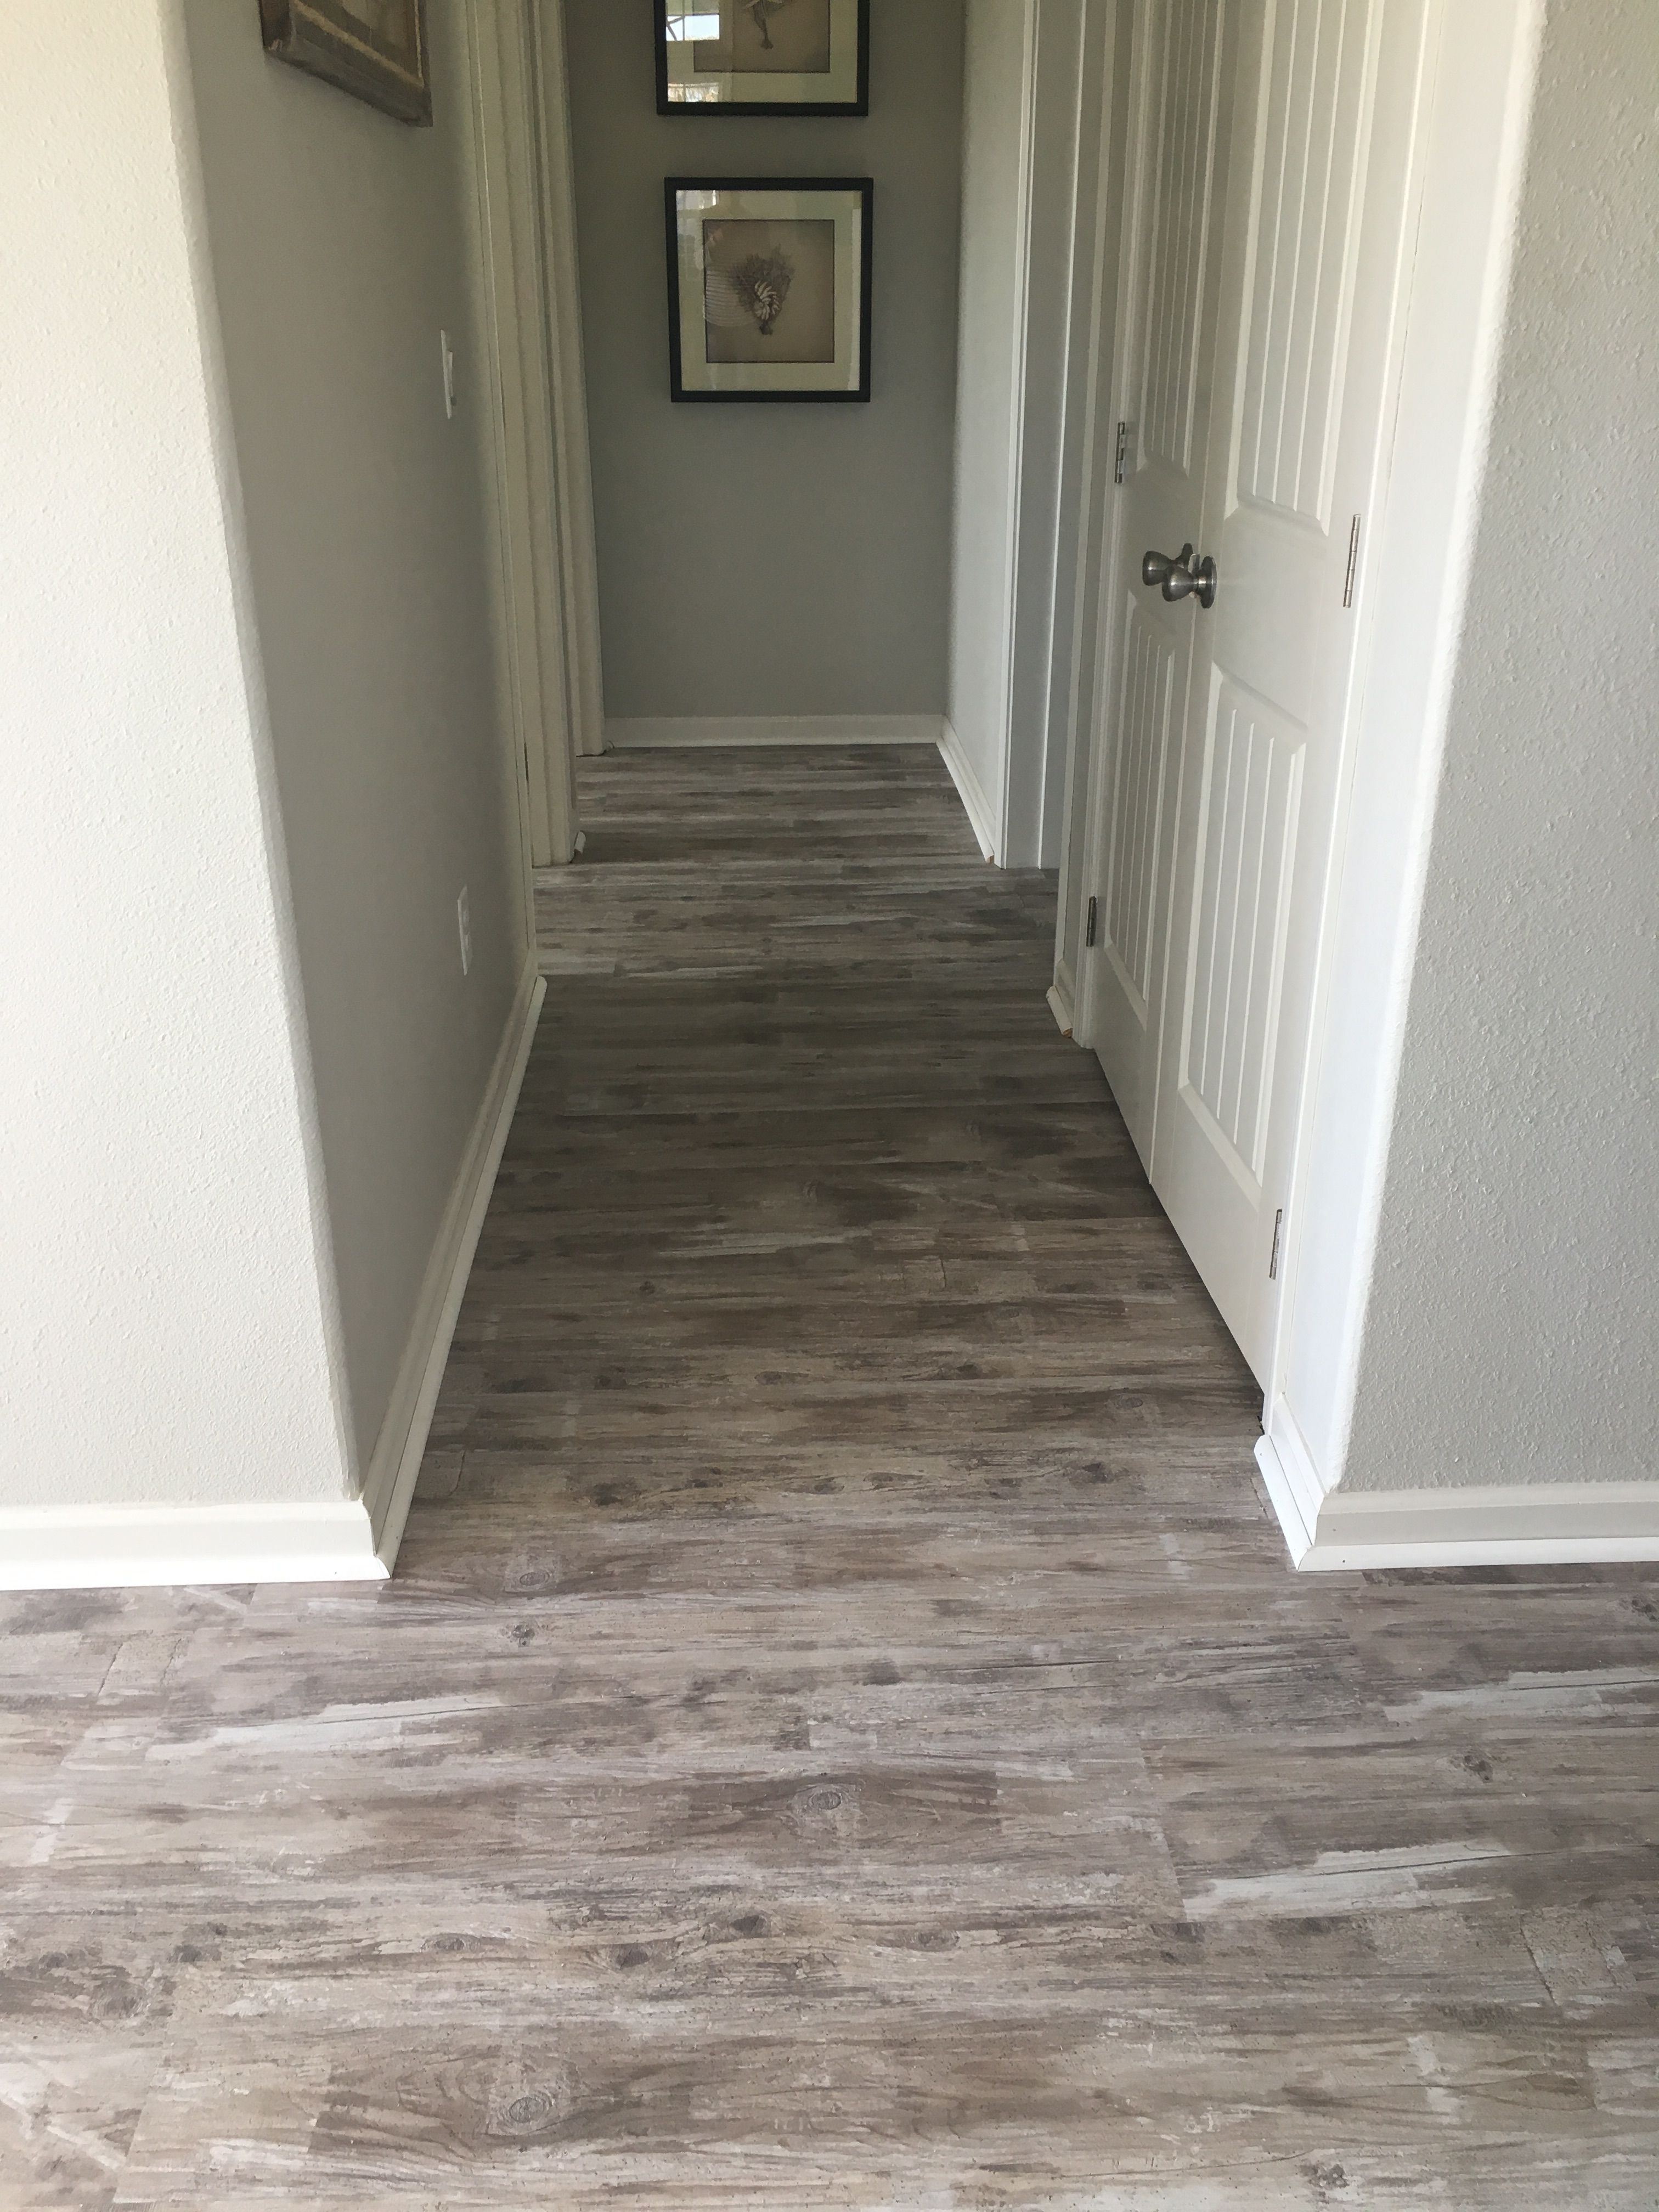 Luxury Vinyl Tile - installed this waterproof flooring in our